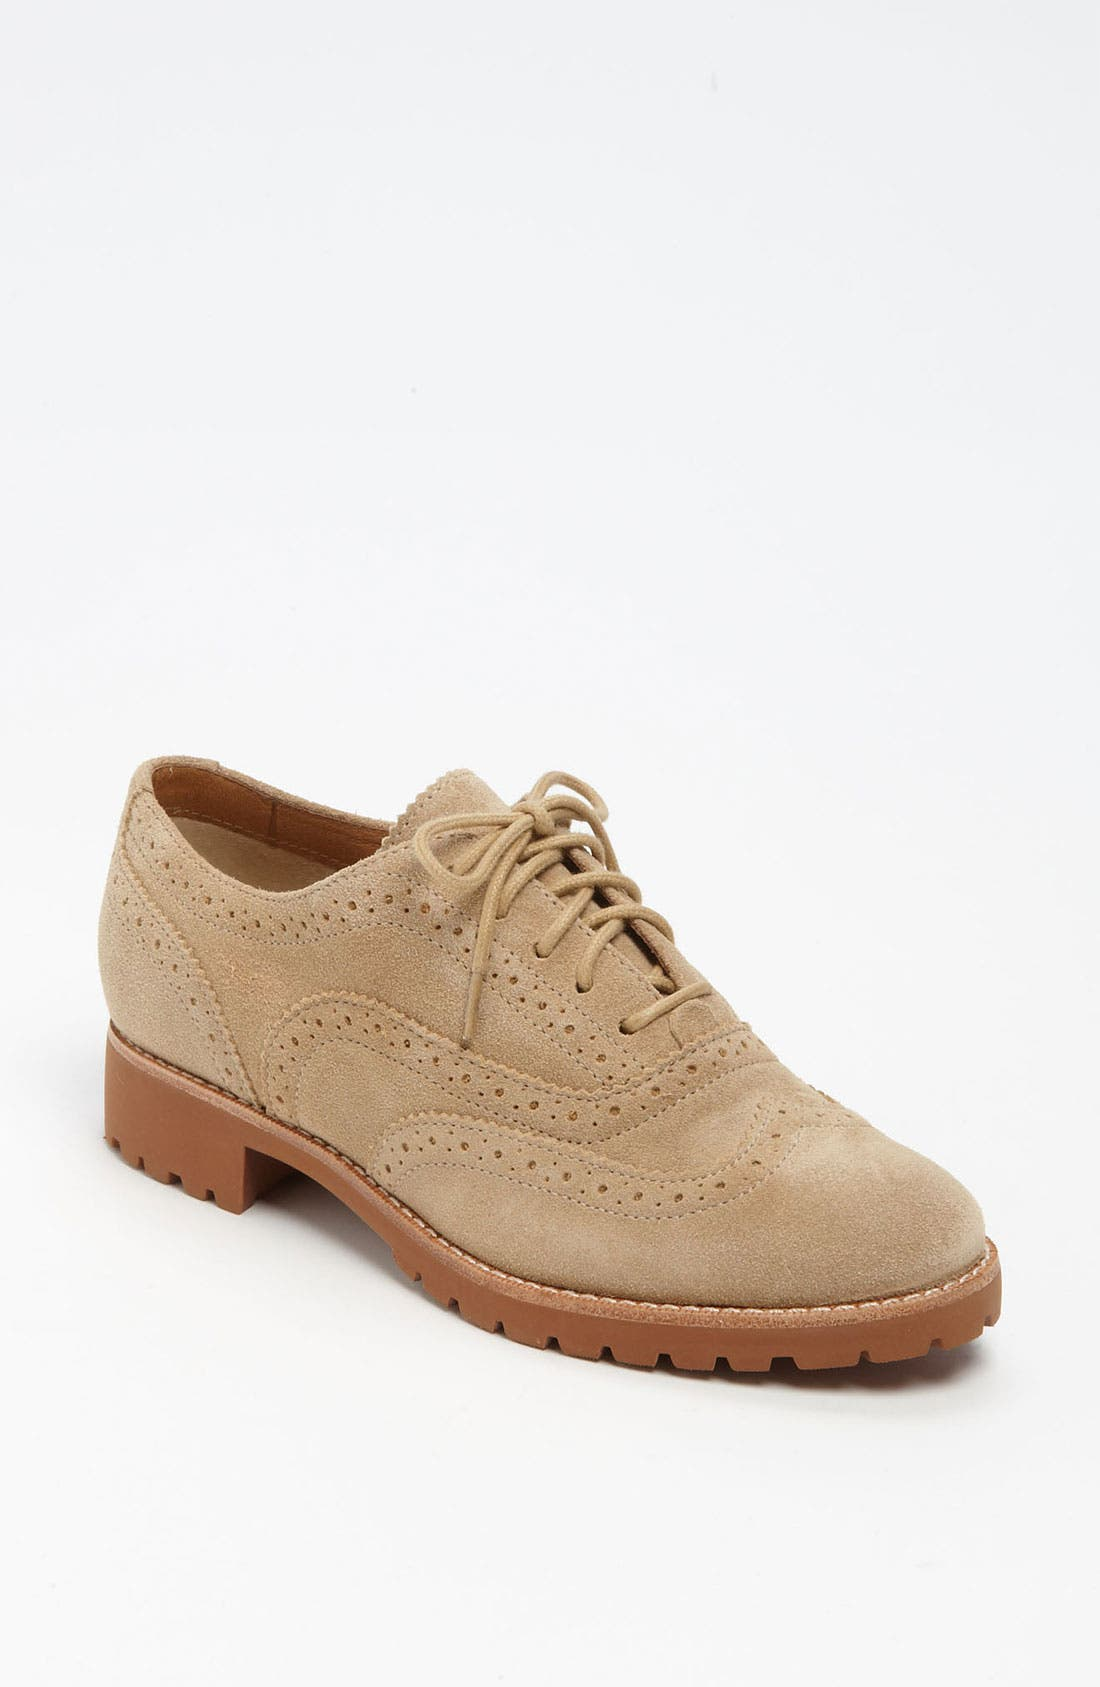 Alternate Image 1 Selected - Sperry Top-Sider® 'Ashbury' Oxford